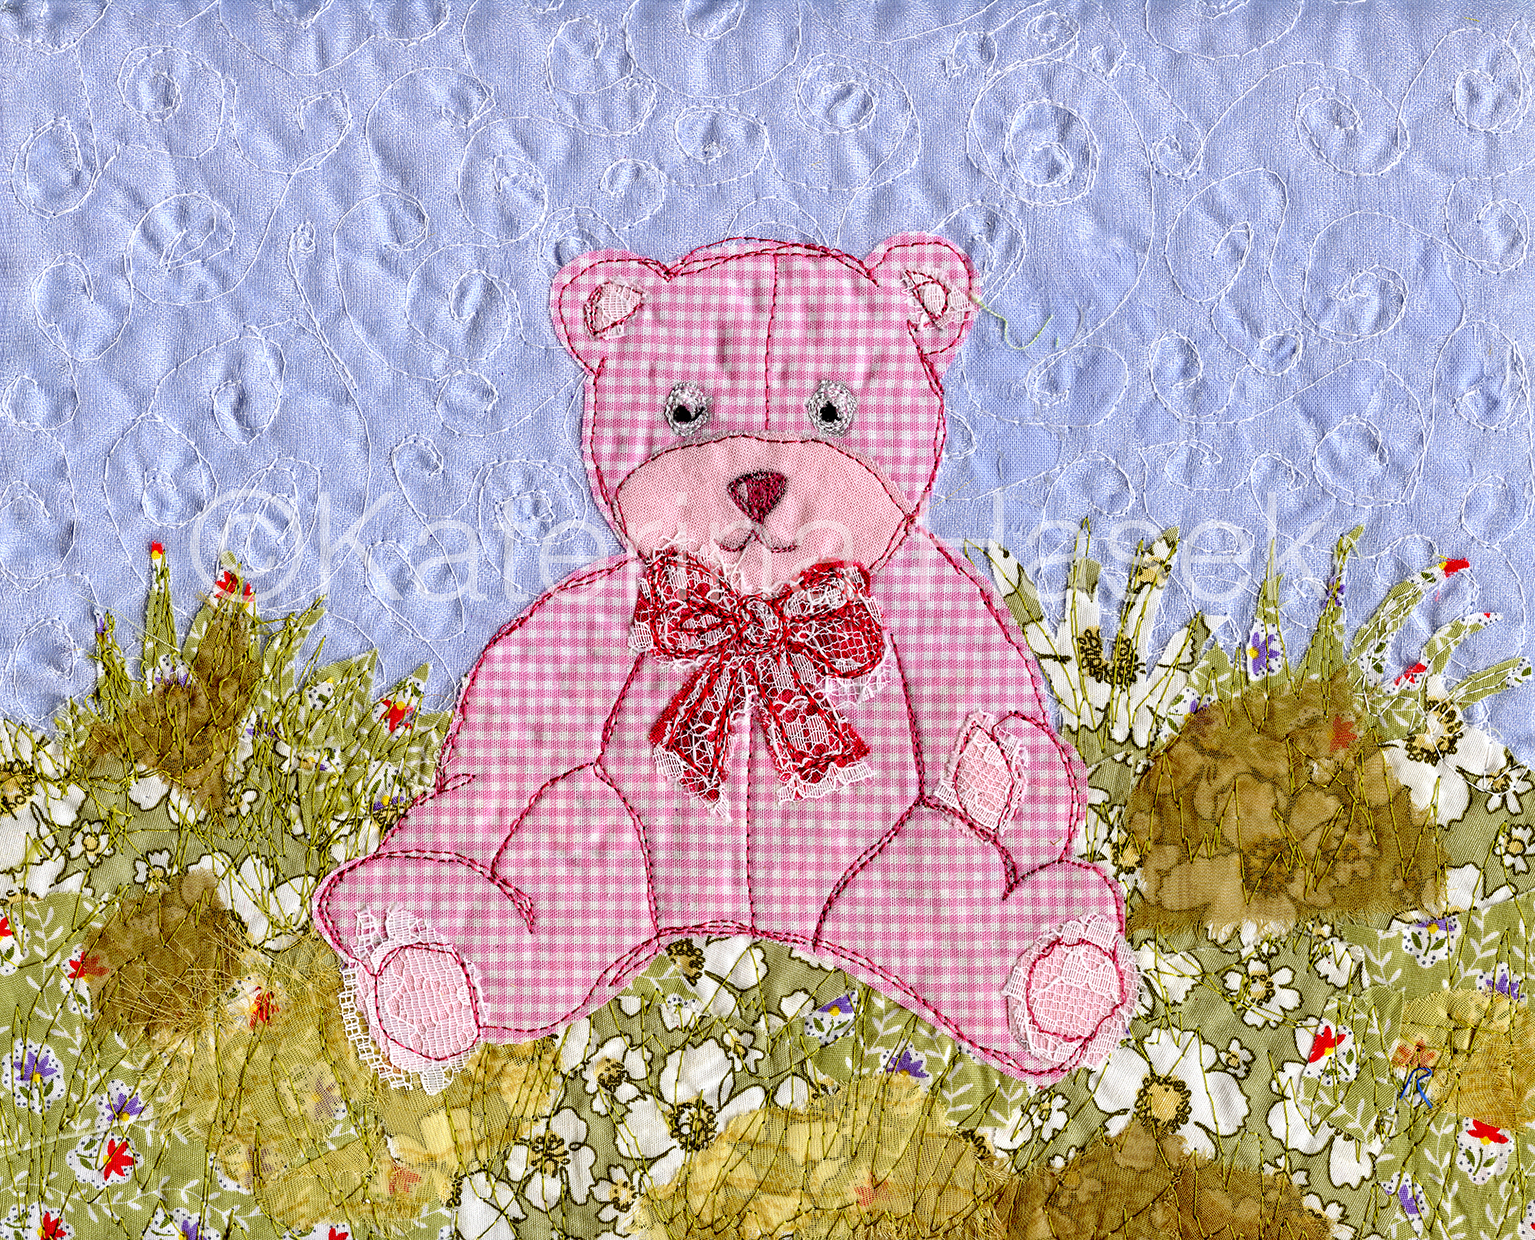 An applique image of pink teddy